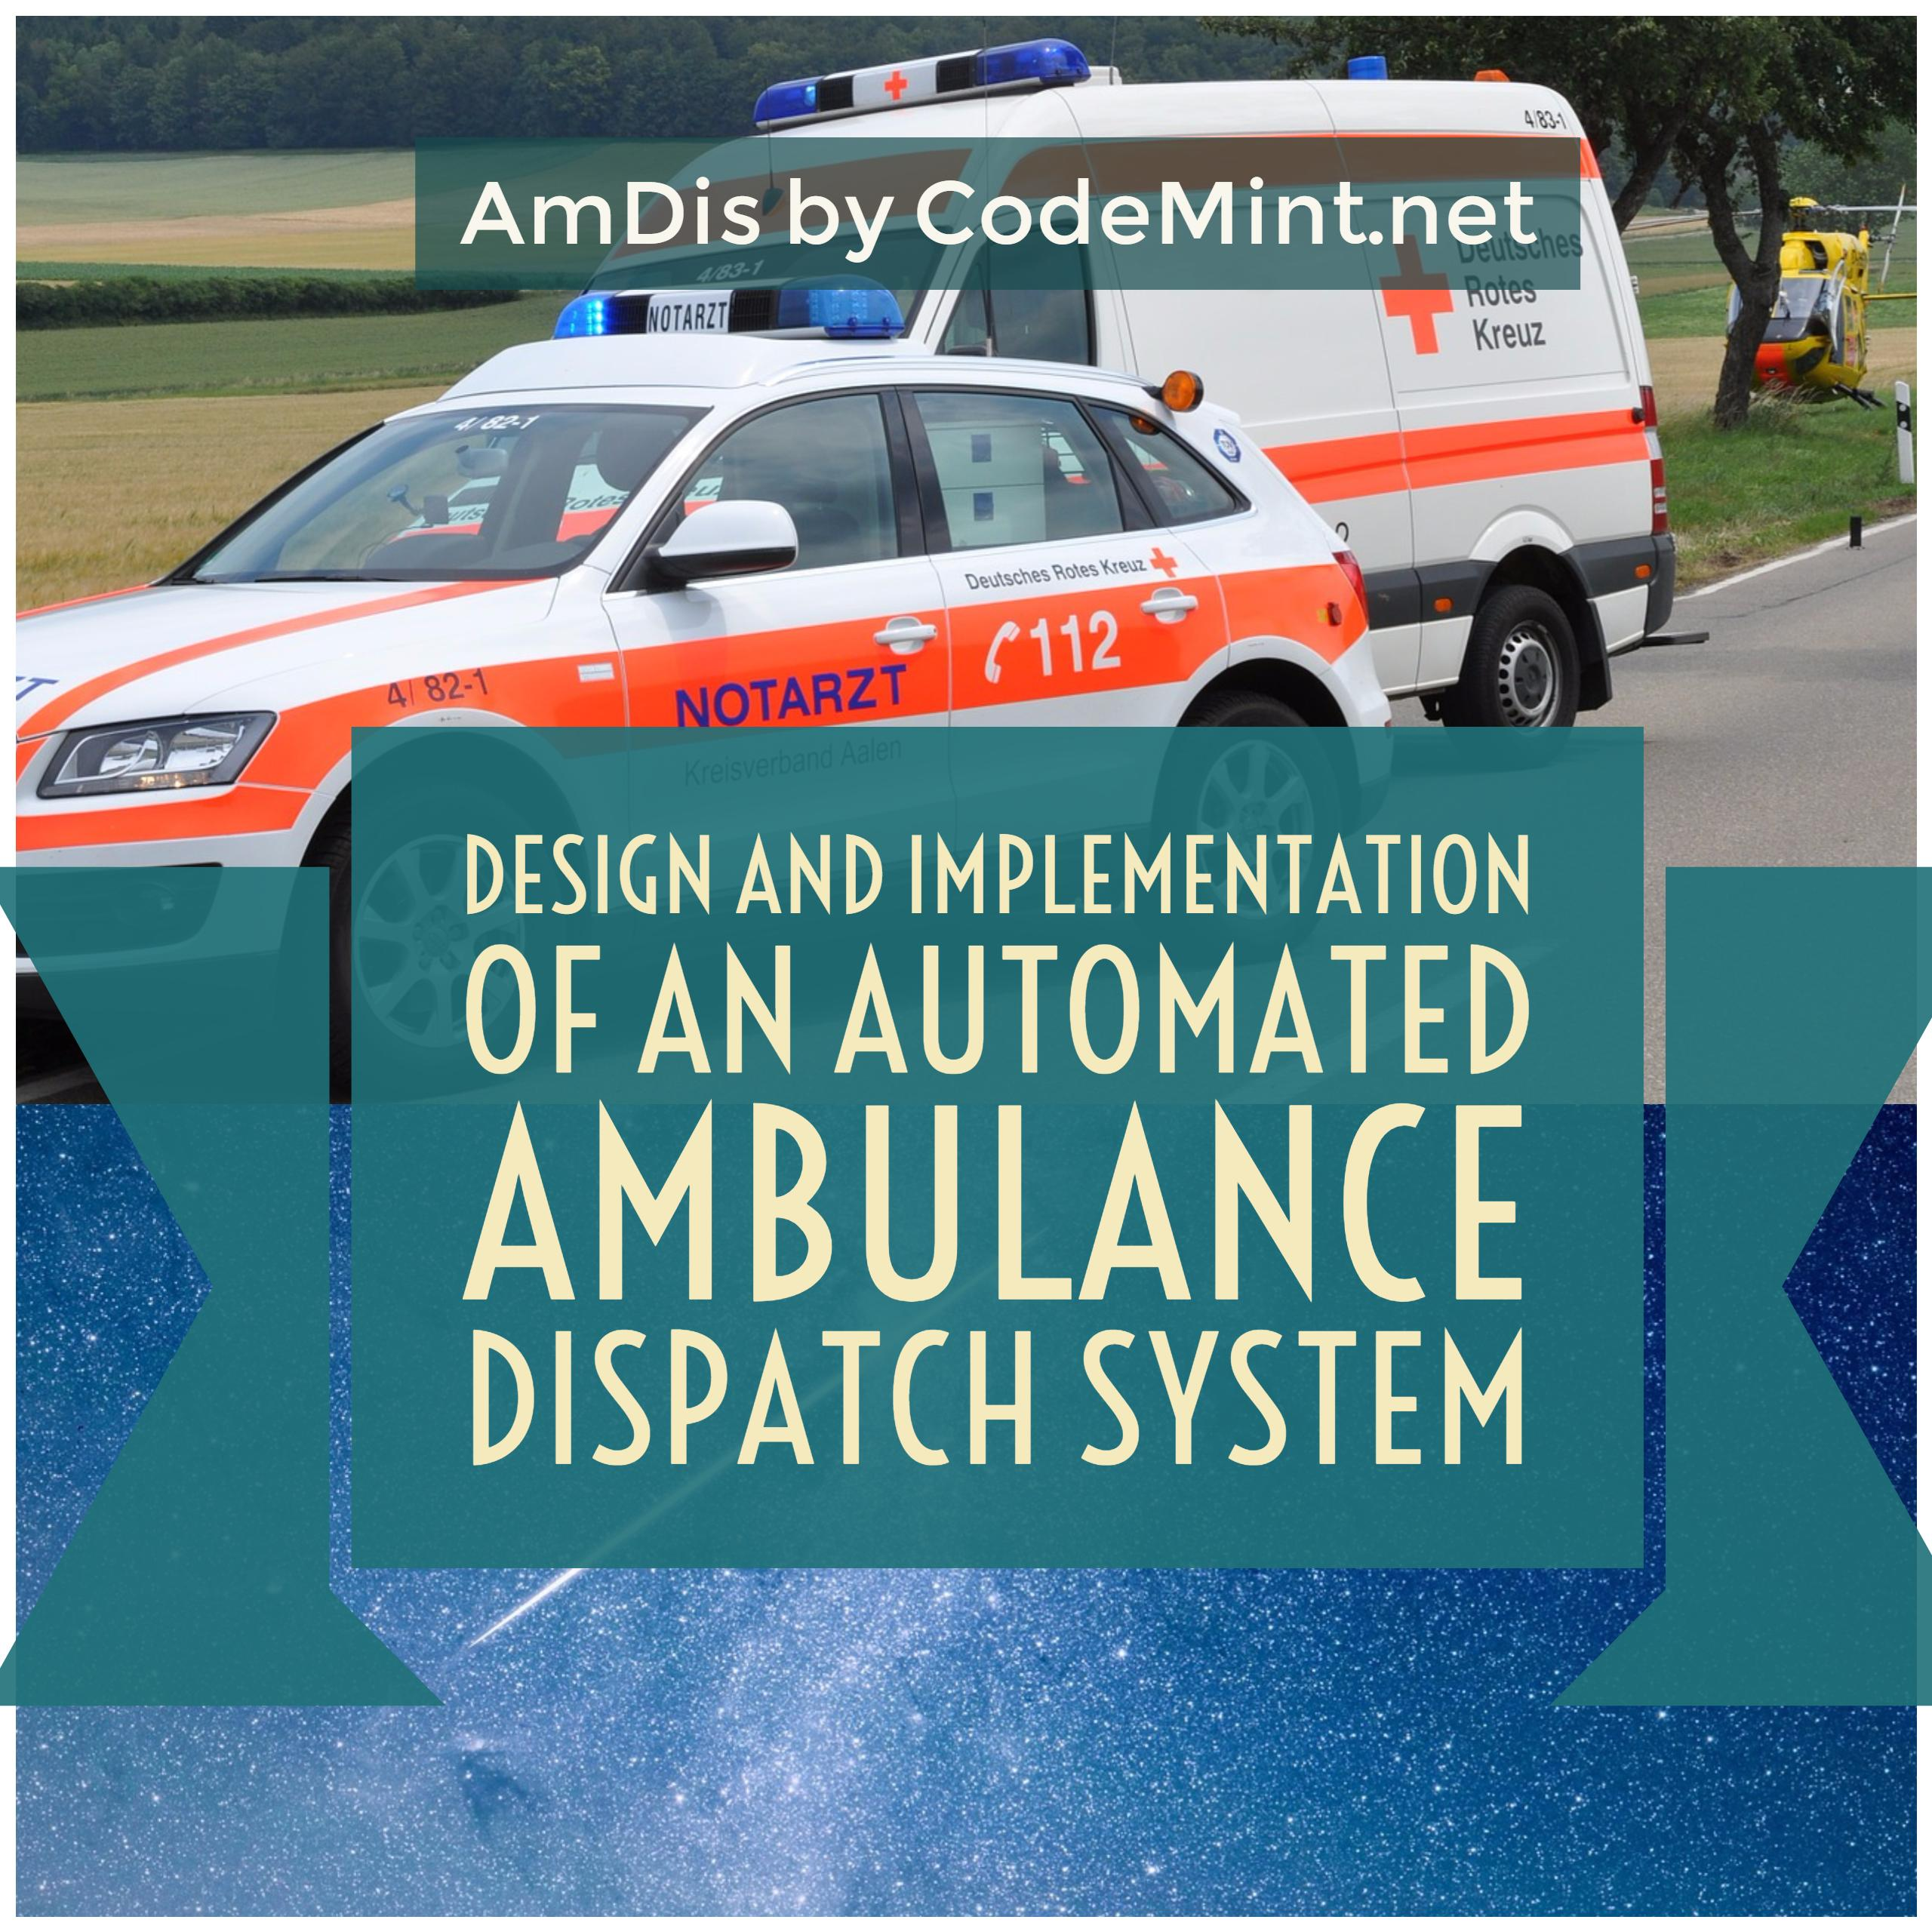 AmDis - Design and Implementation of an Automated Ambulance Dispatch System